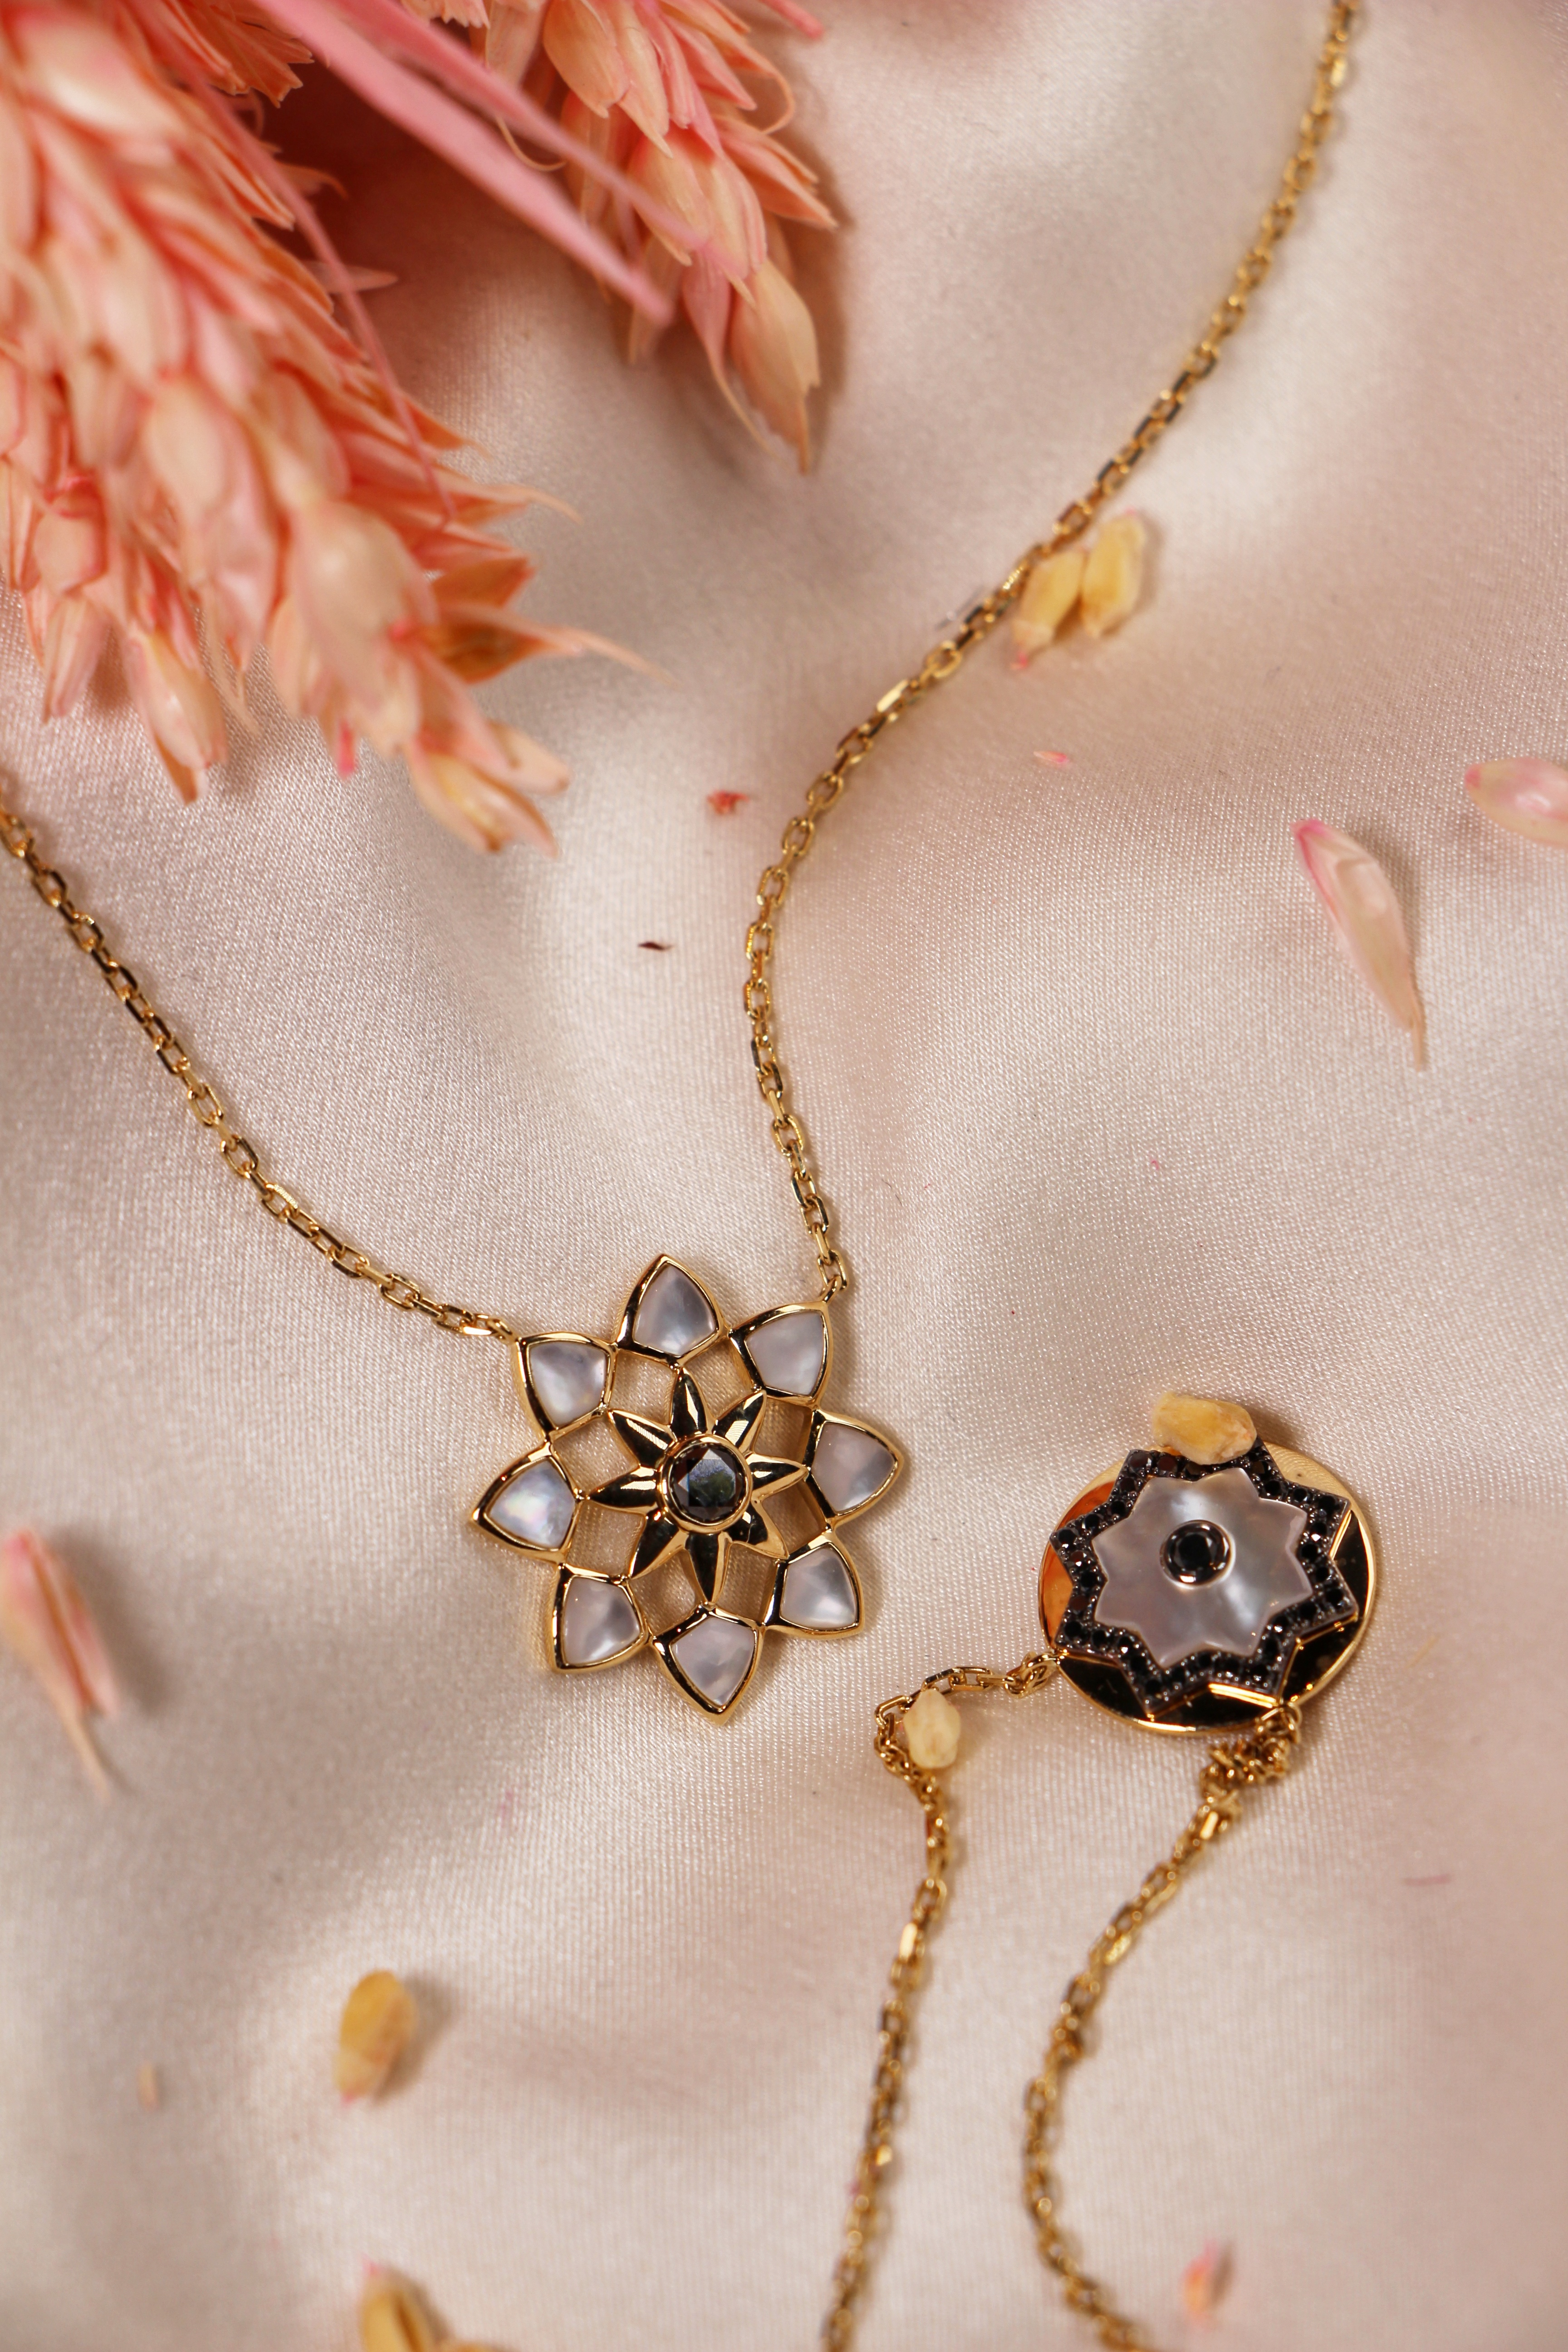 Black Orient Necklace by Amira Karaouli on curated-crowd.com